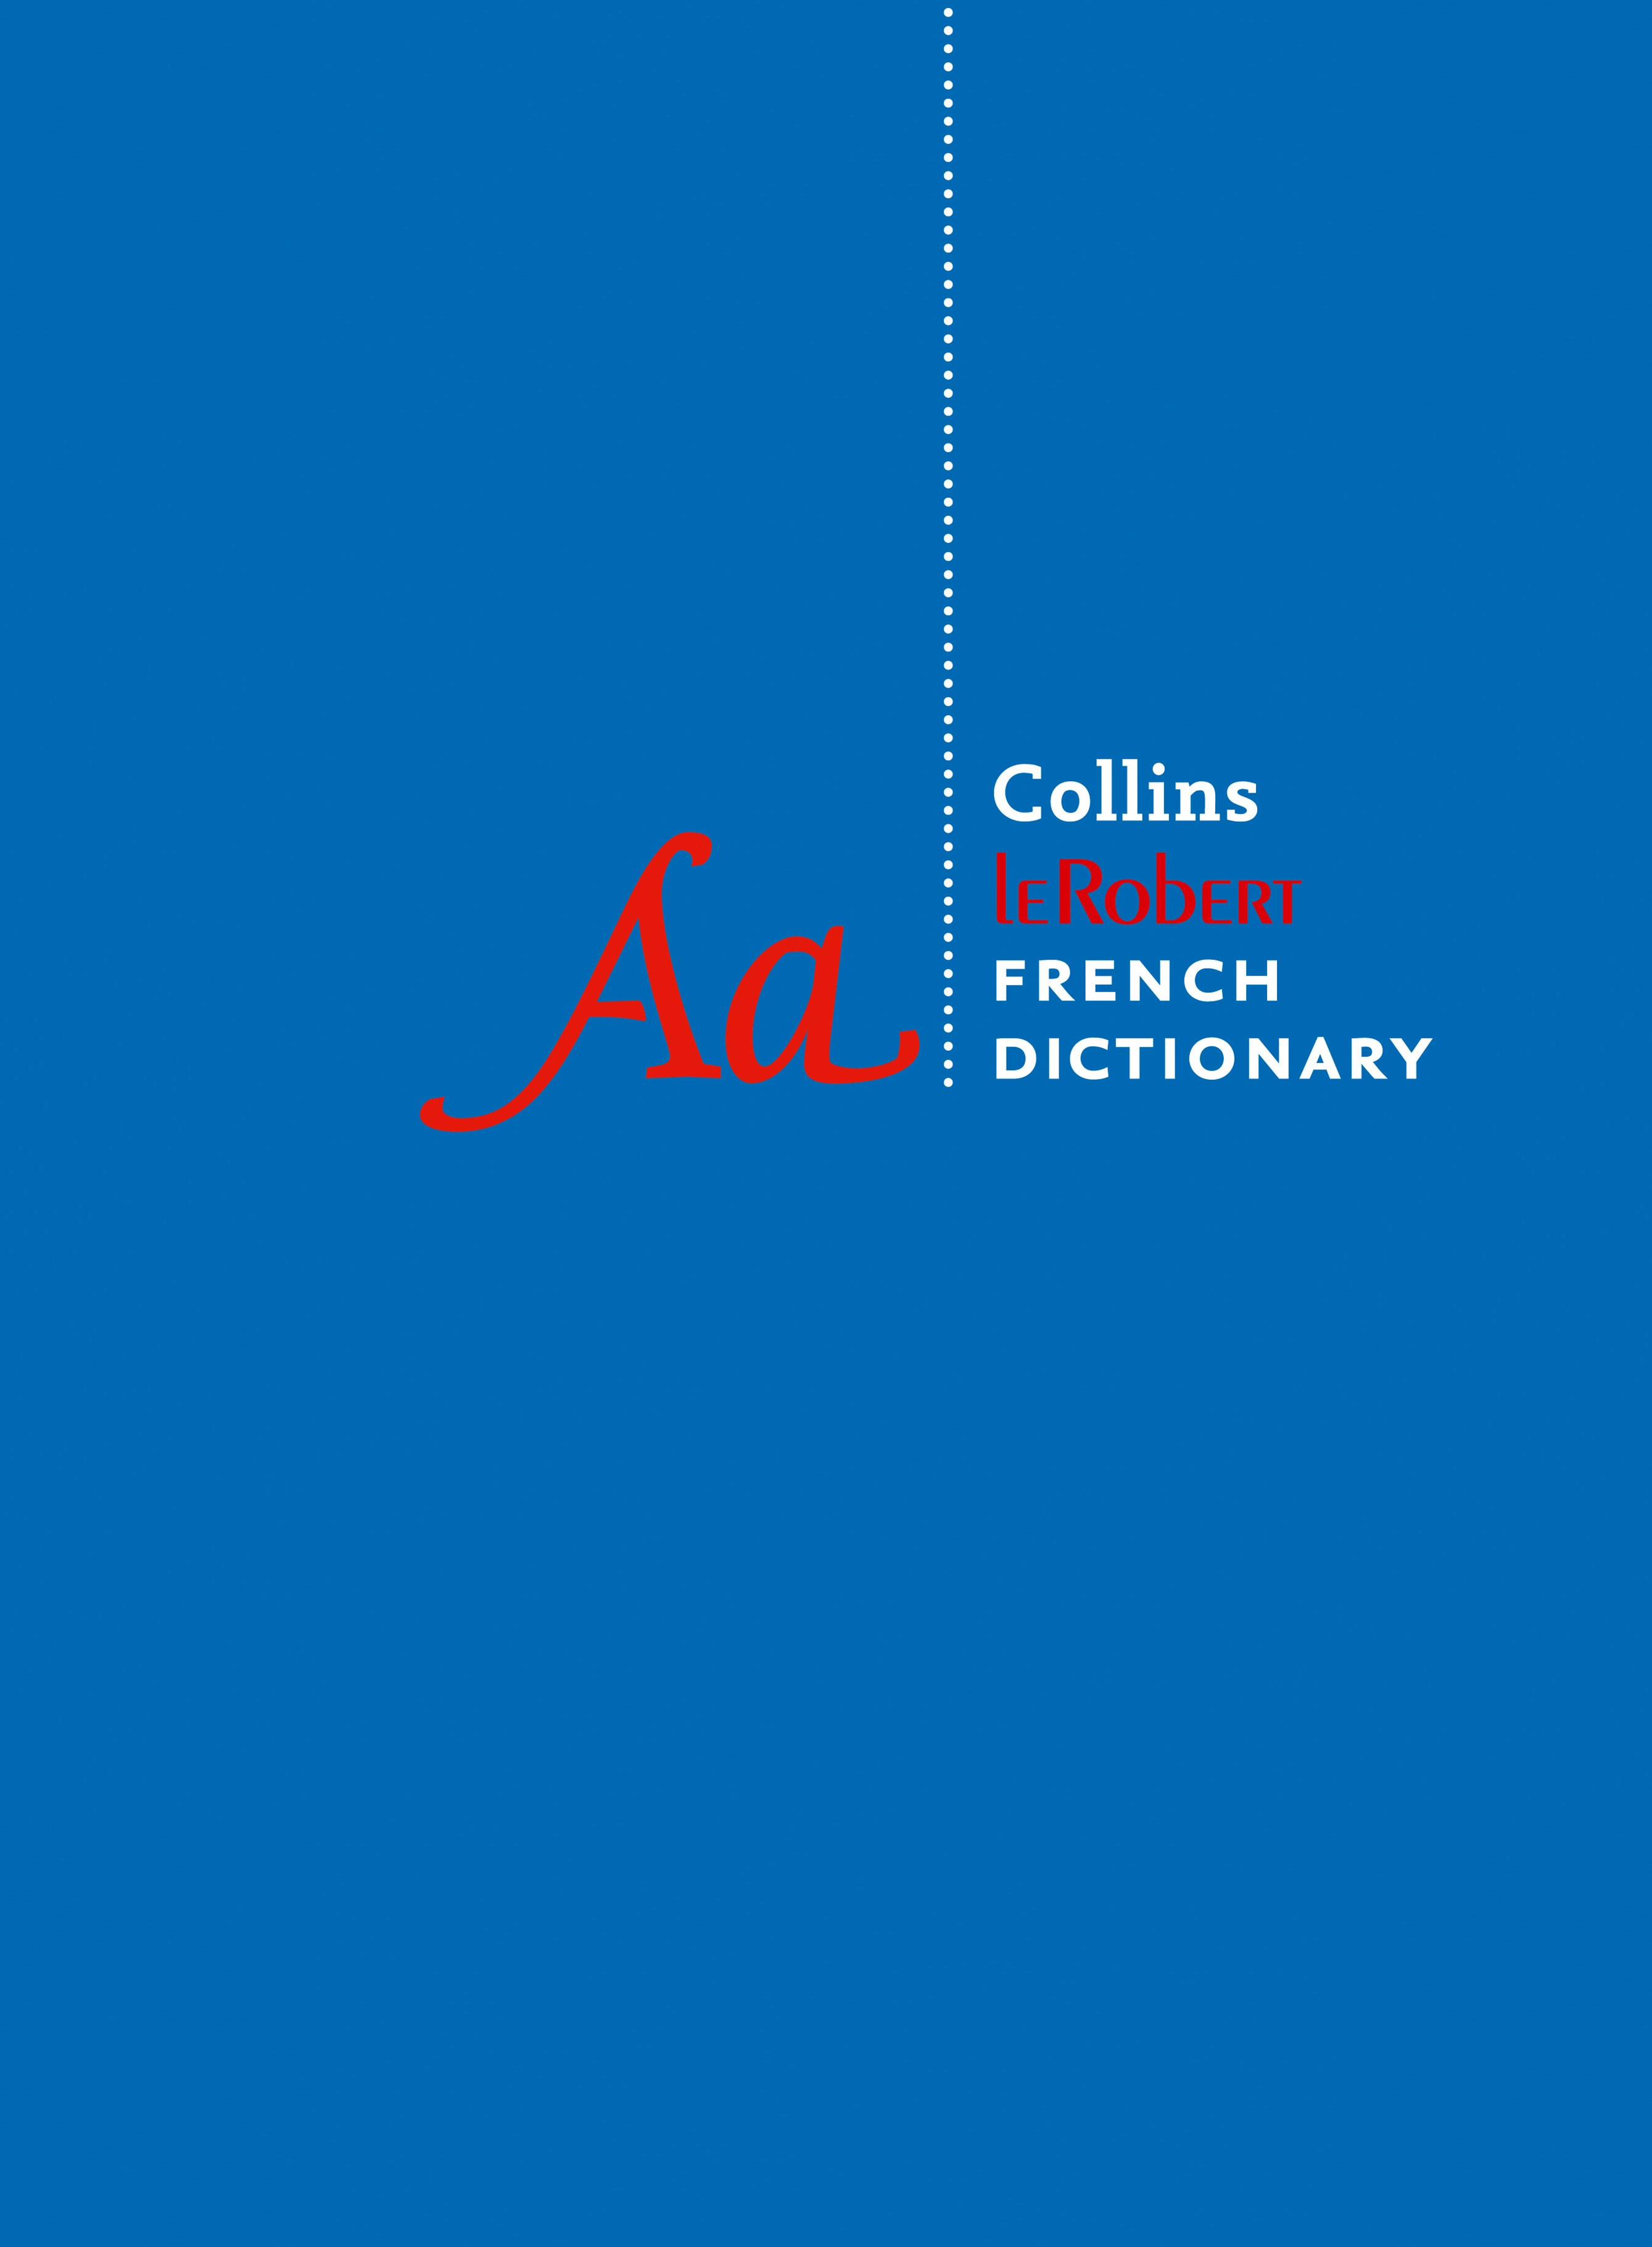 Collins Robert French Dictionary: Complete and Unabridged [10th Edition]